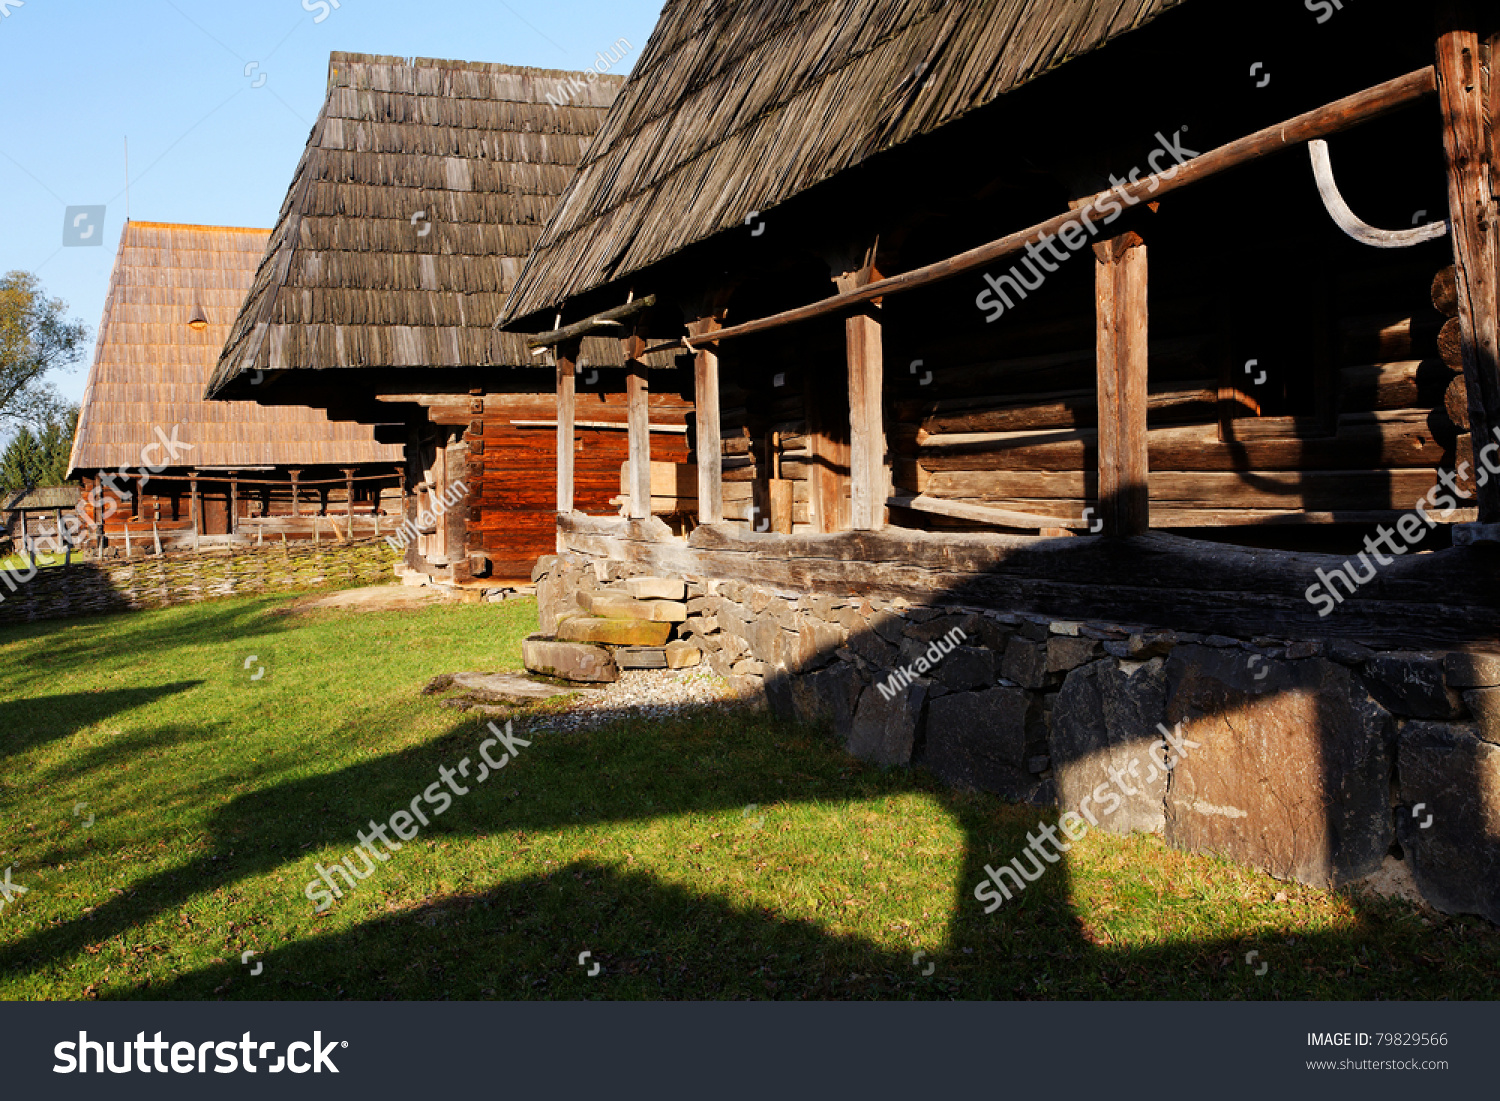 Traditional wooden house in maramures romania stock photo 79829566 shutterstock - Houses maramures wood ...